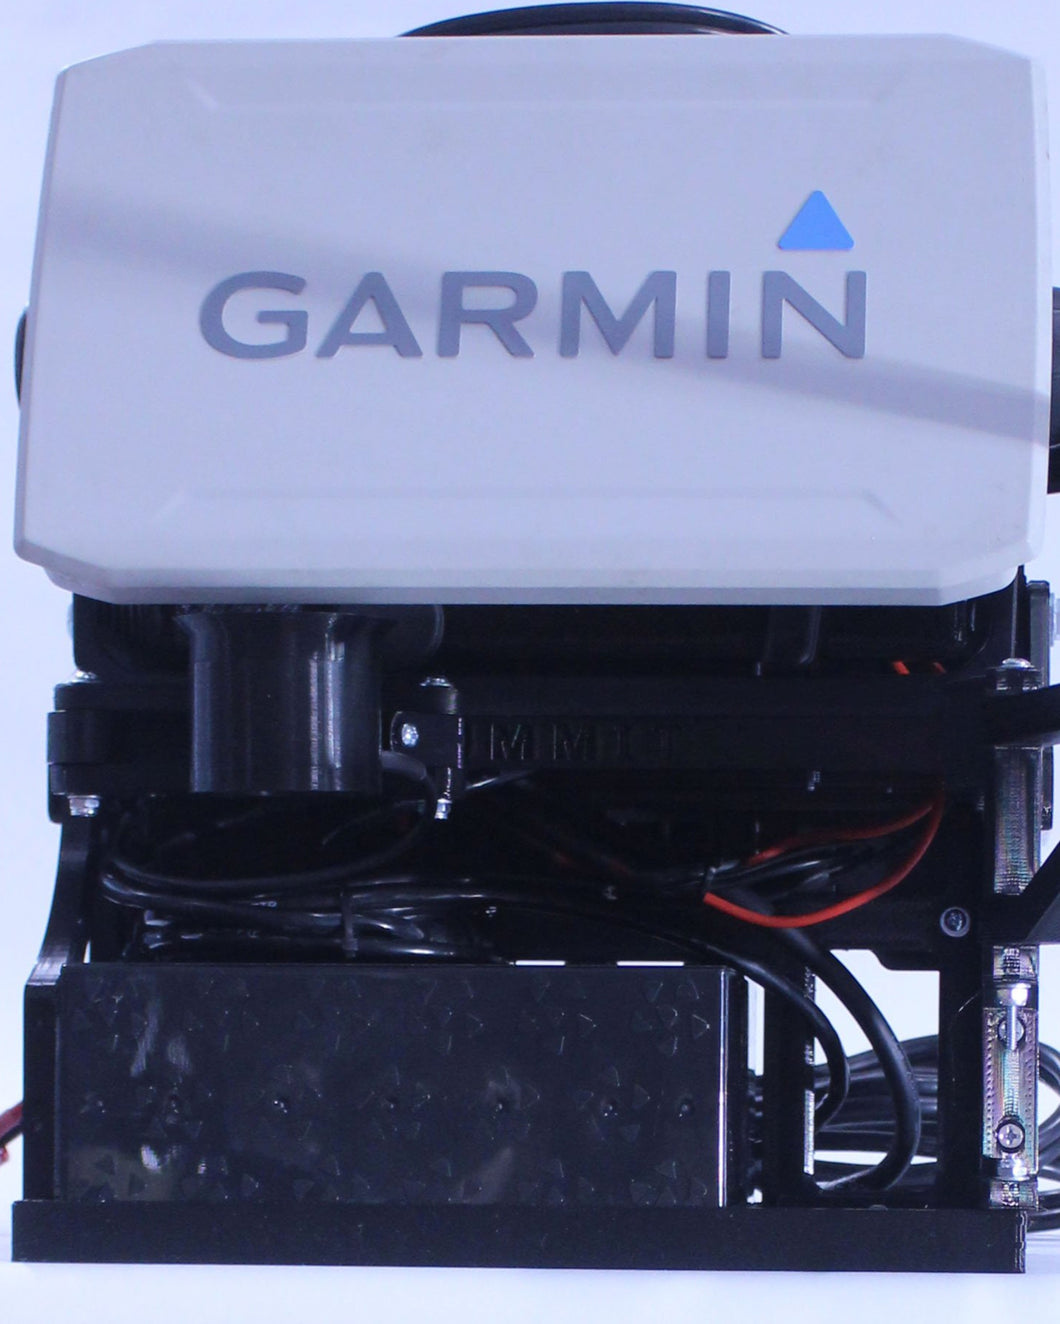 Summit Shuttle for Garmin Livescope